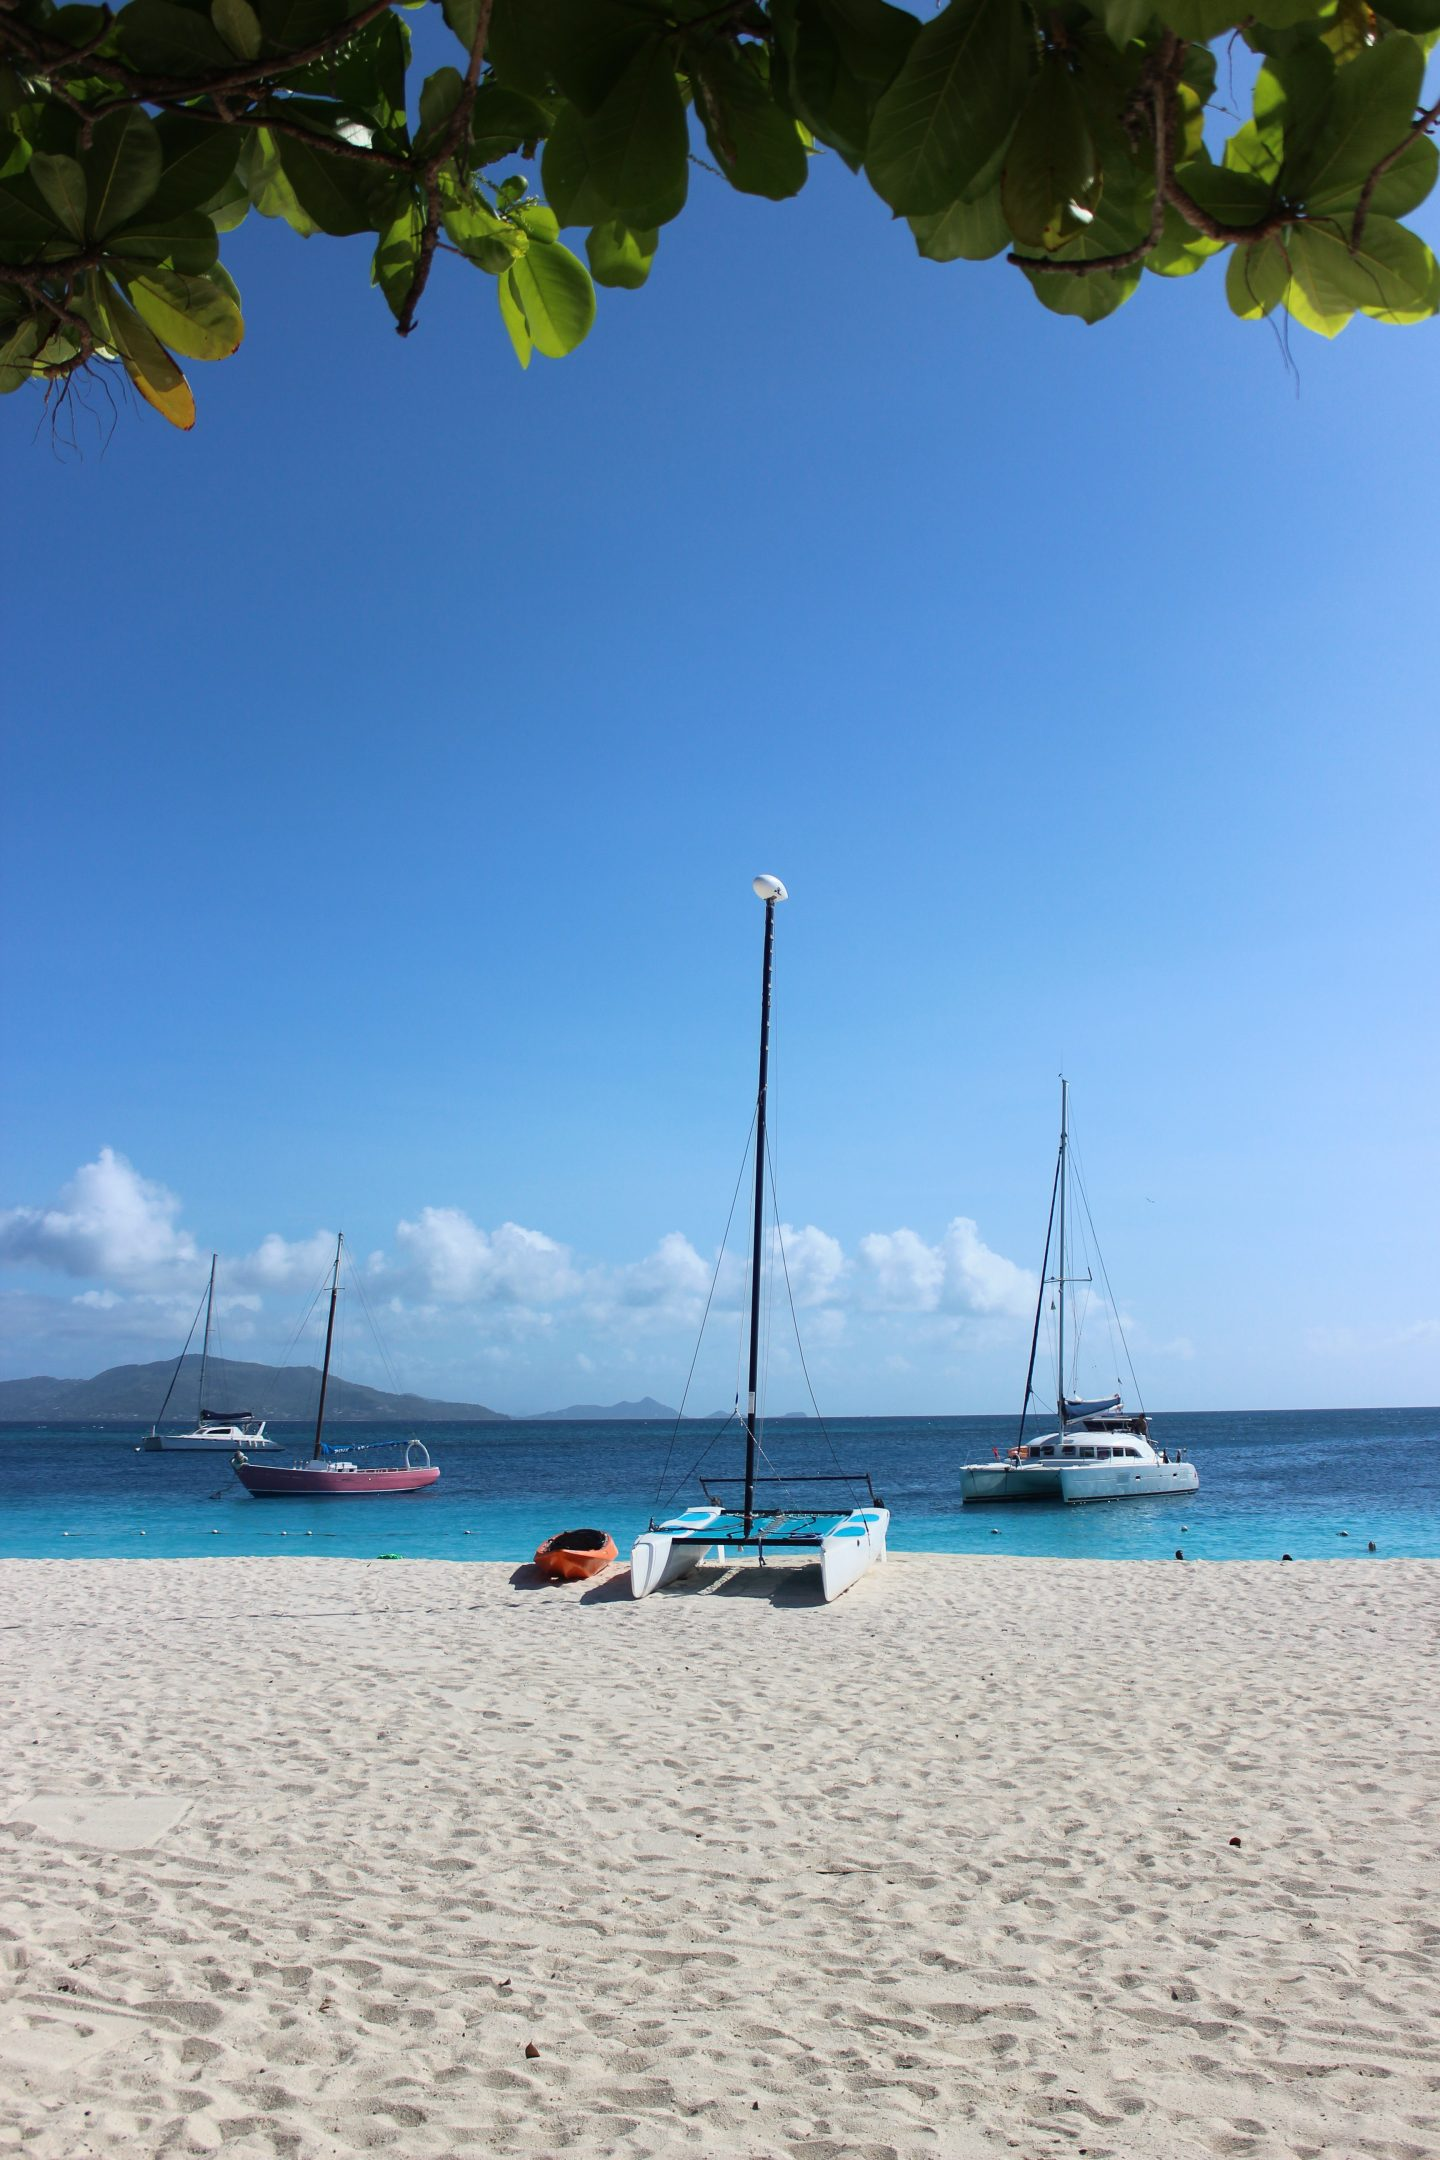 Clutch and carry on - UK Travel blogger - palm island resort, grenadines (314 of 361)